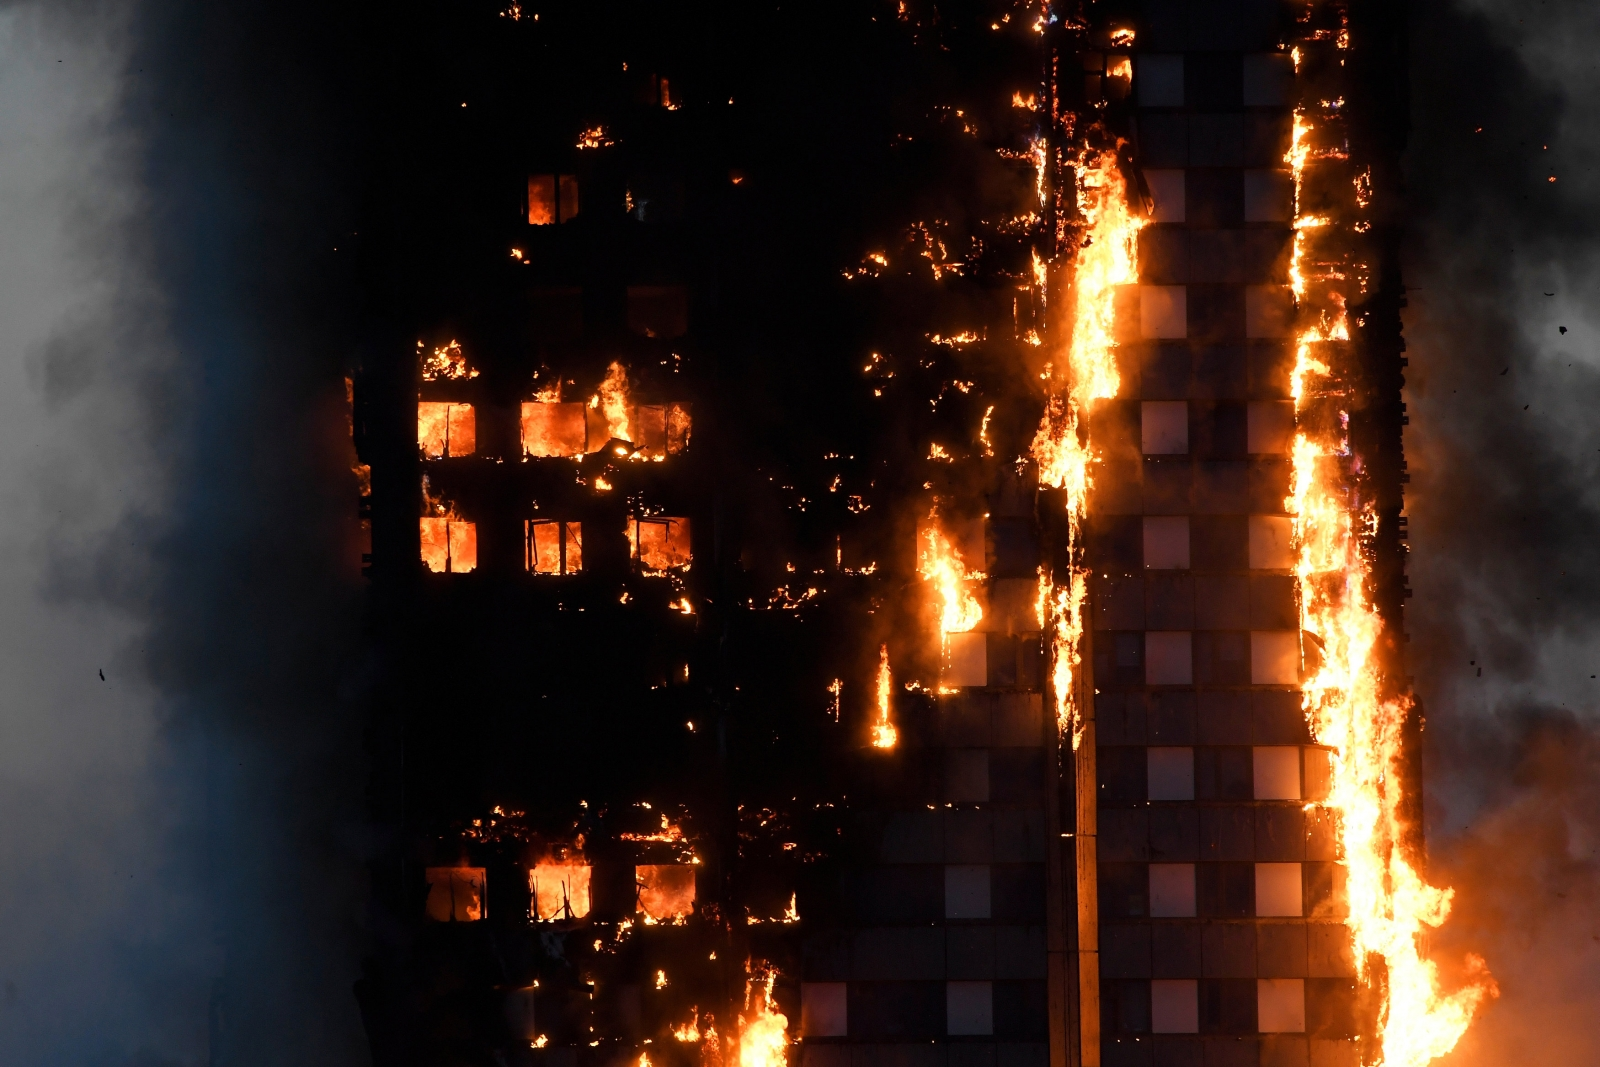 27-storey-grenfell-tower-engulfed-in-fire-in-west-london